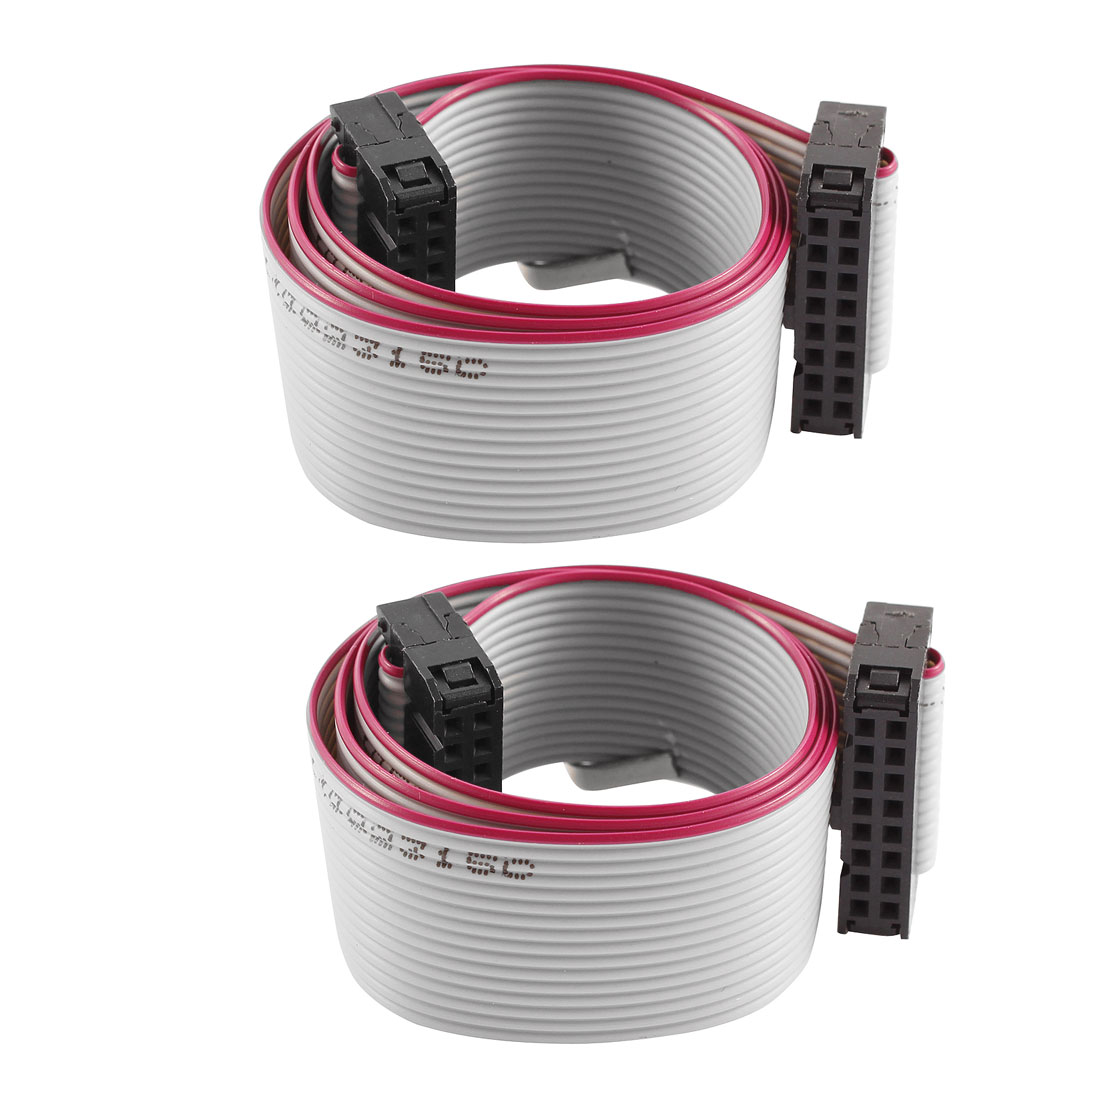 2 Pcs FC-16P IDC 16-Pin F/F Hard Drive Data Extension Wire Flat Ribbon Cable Connector 40cm Long for Motherboard